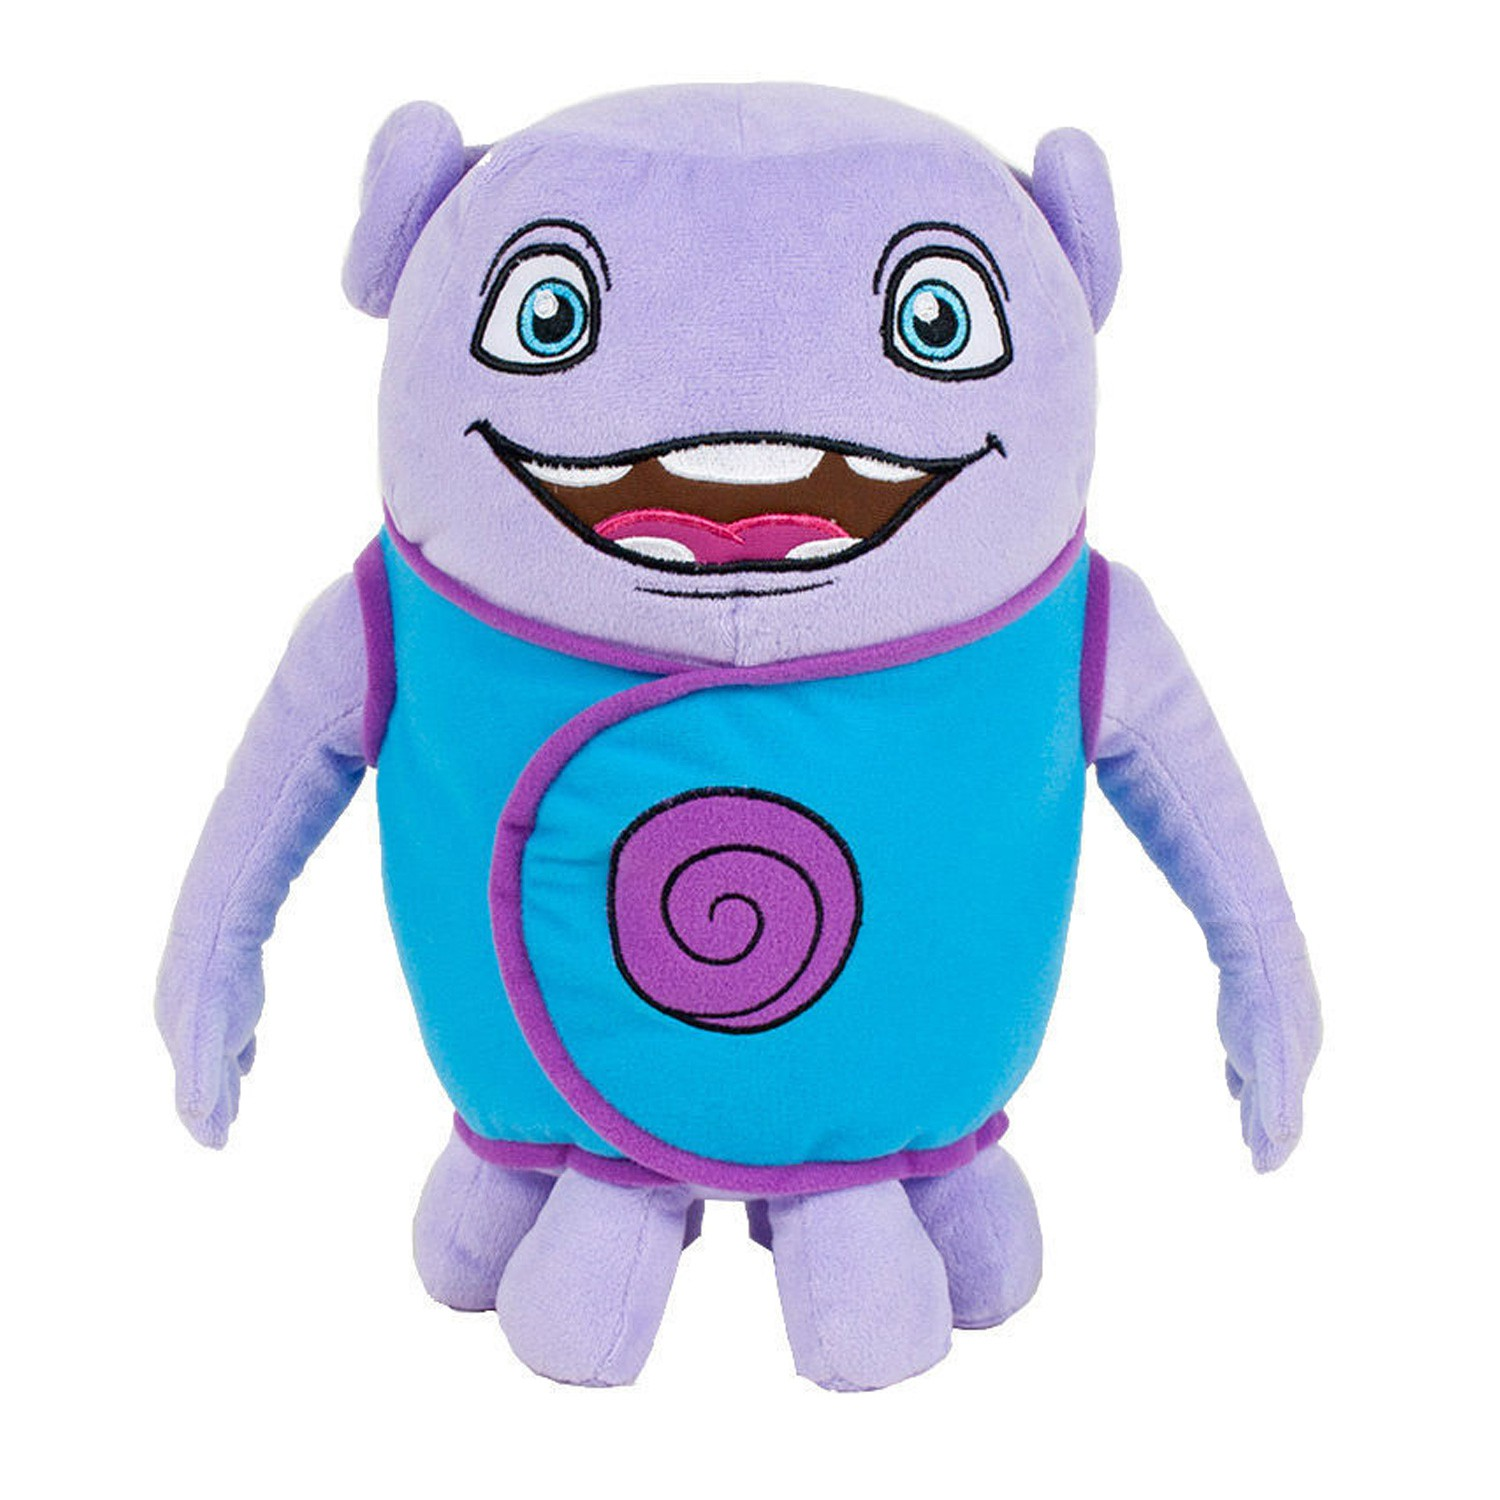 Cartone animato home peluche cm originale oh alieno tip